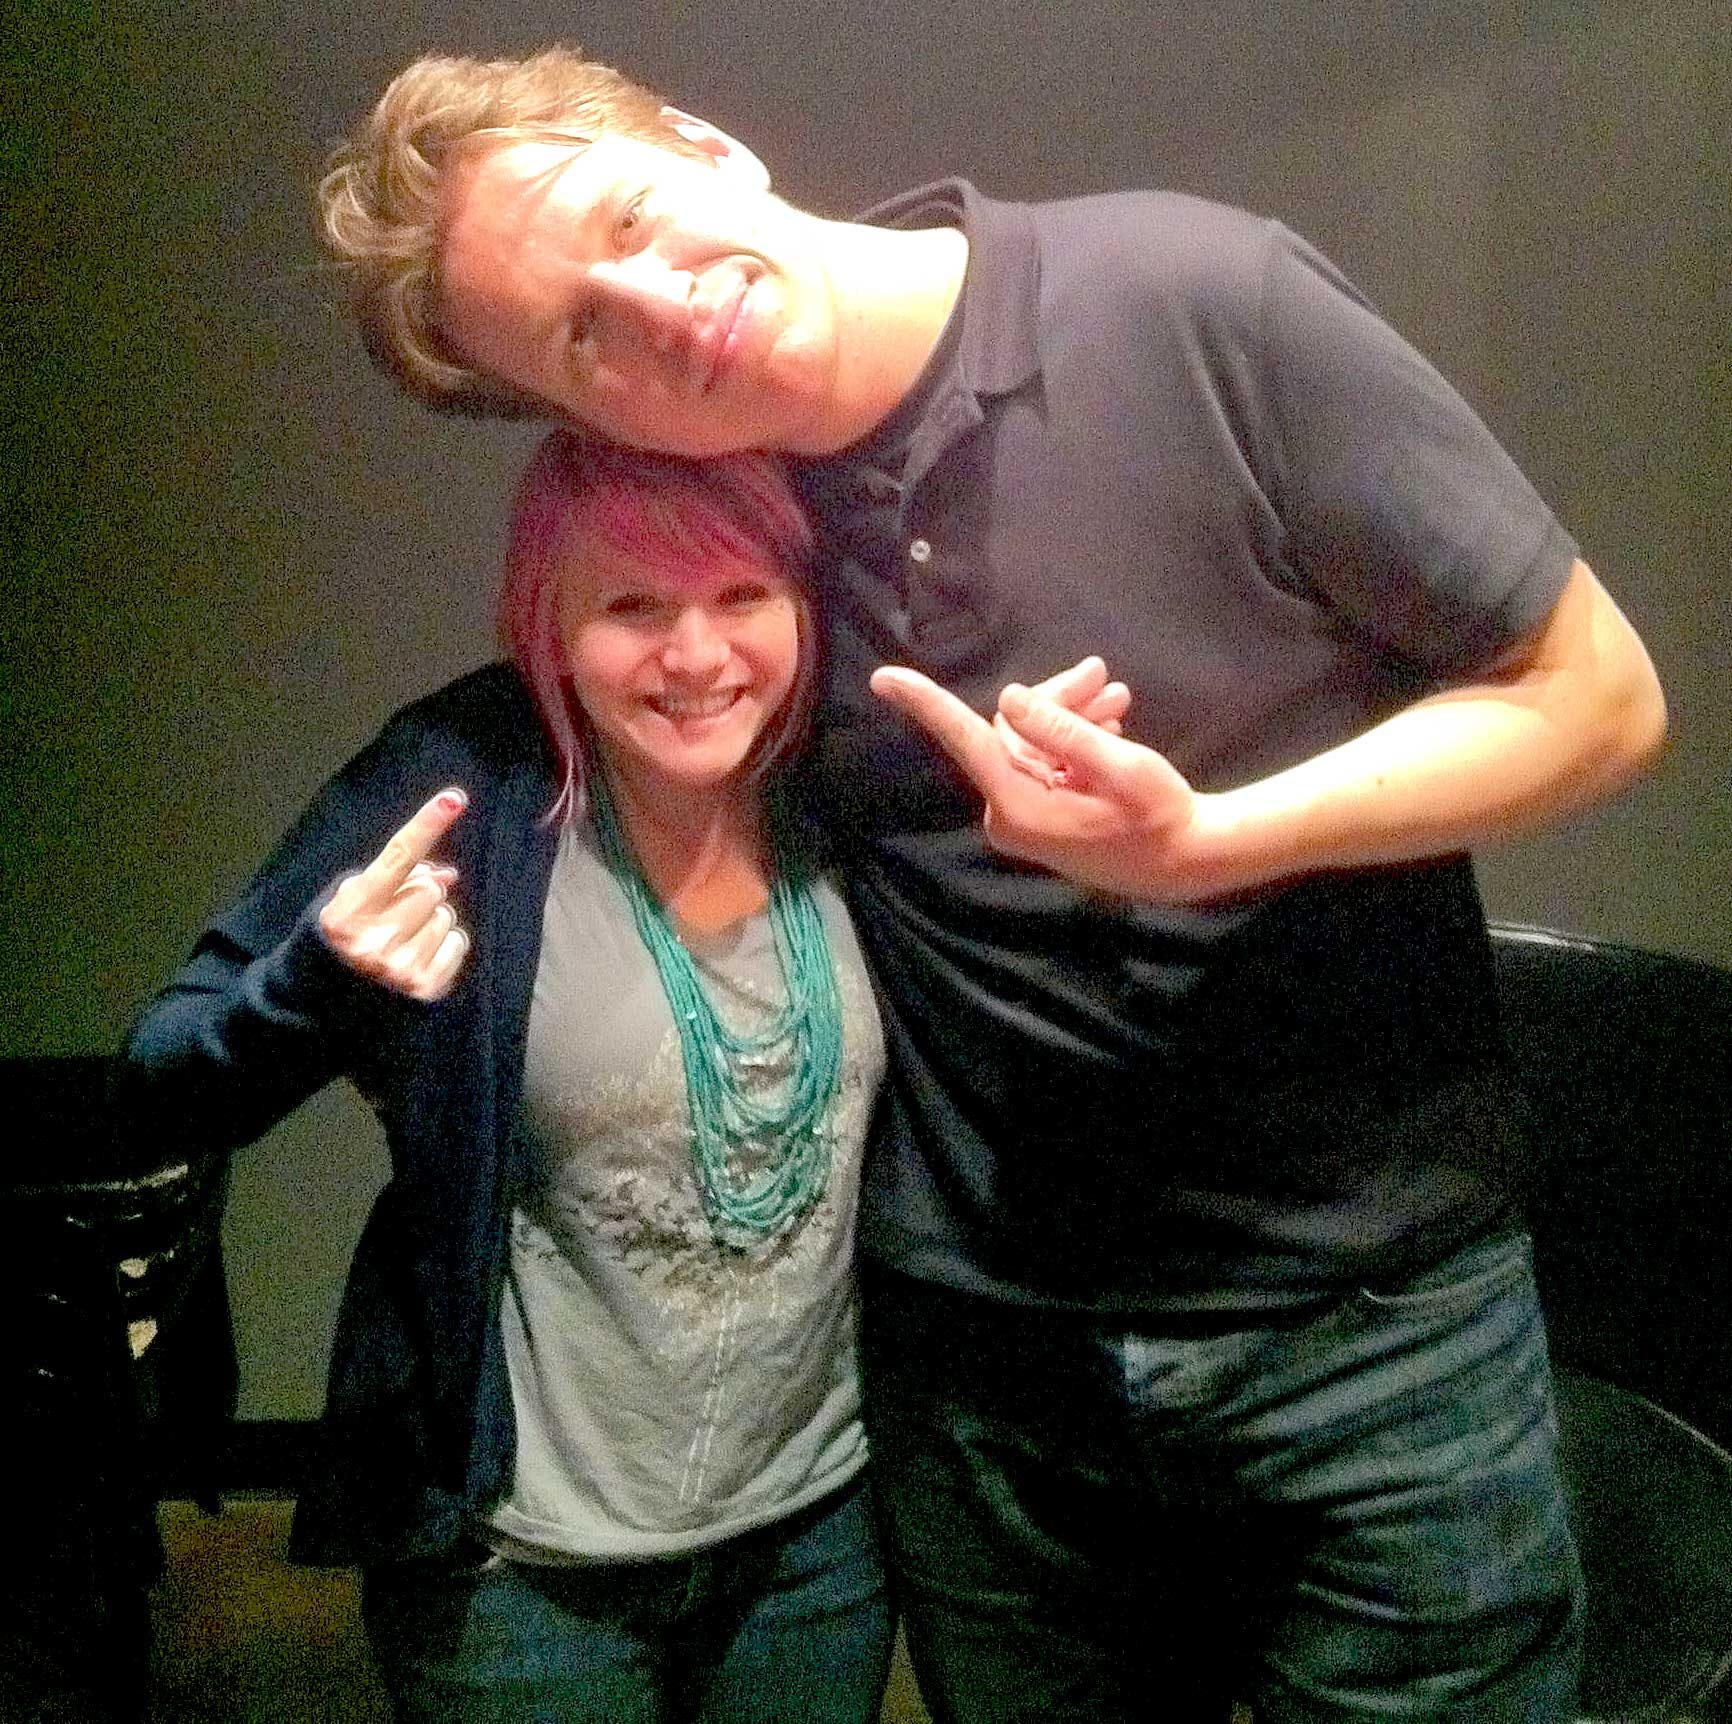 Meeting the very tall Pete Holmes